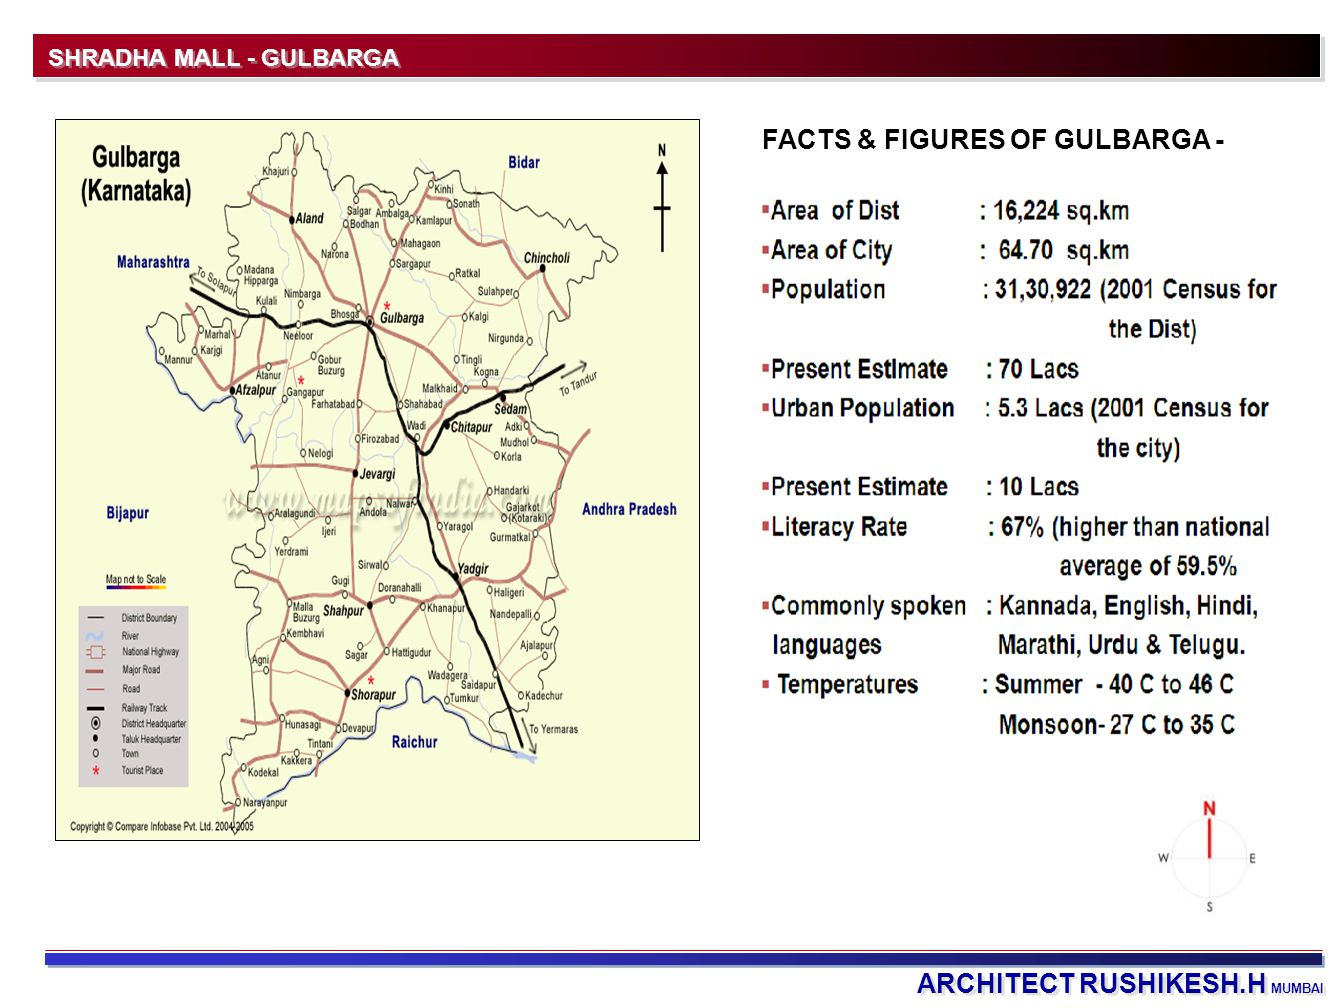 FACTS & FIGURES OF GULBARGA -